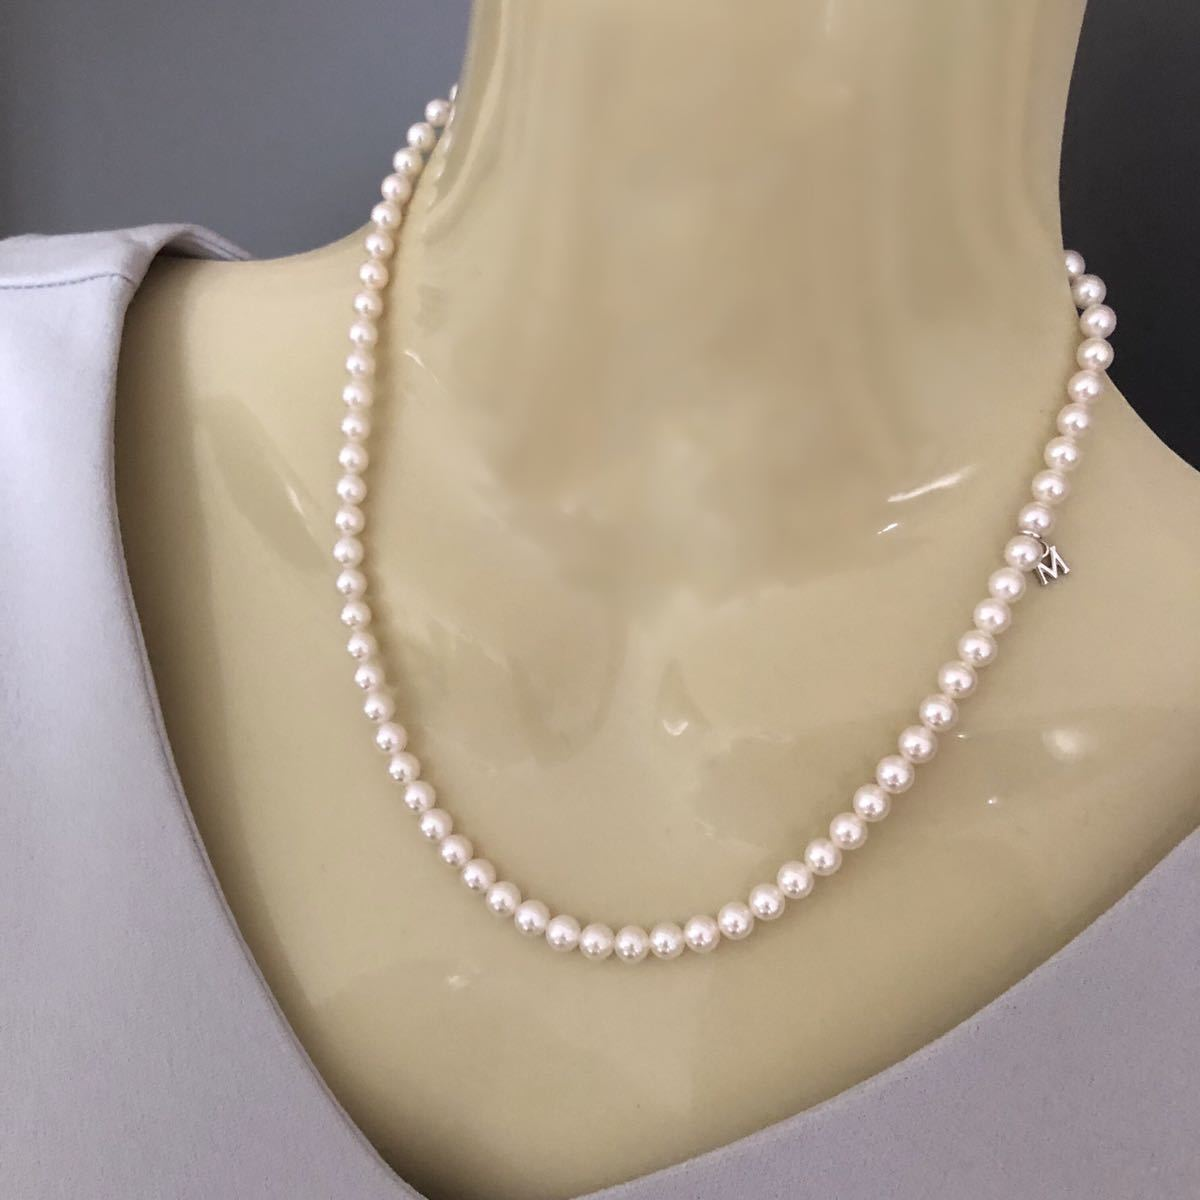 MIKIMOTO ミキモト アコヤパールネックレス SIL 5mm_画像9